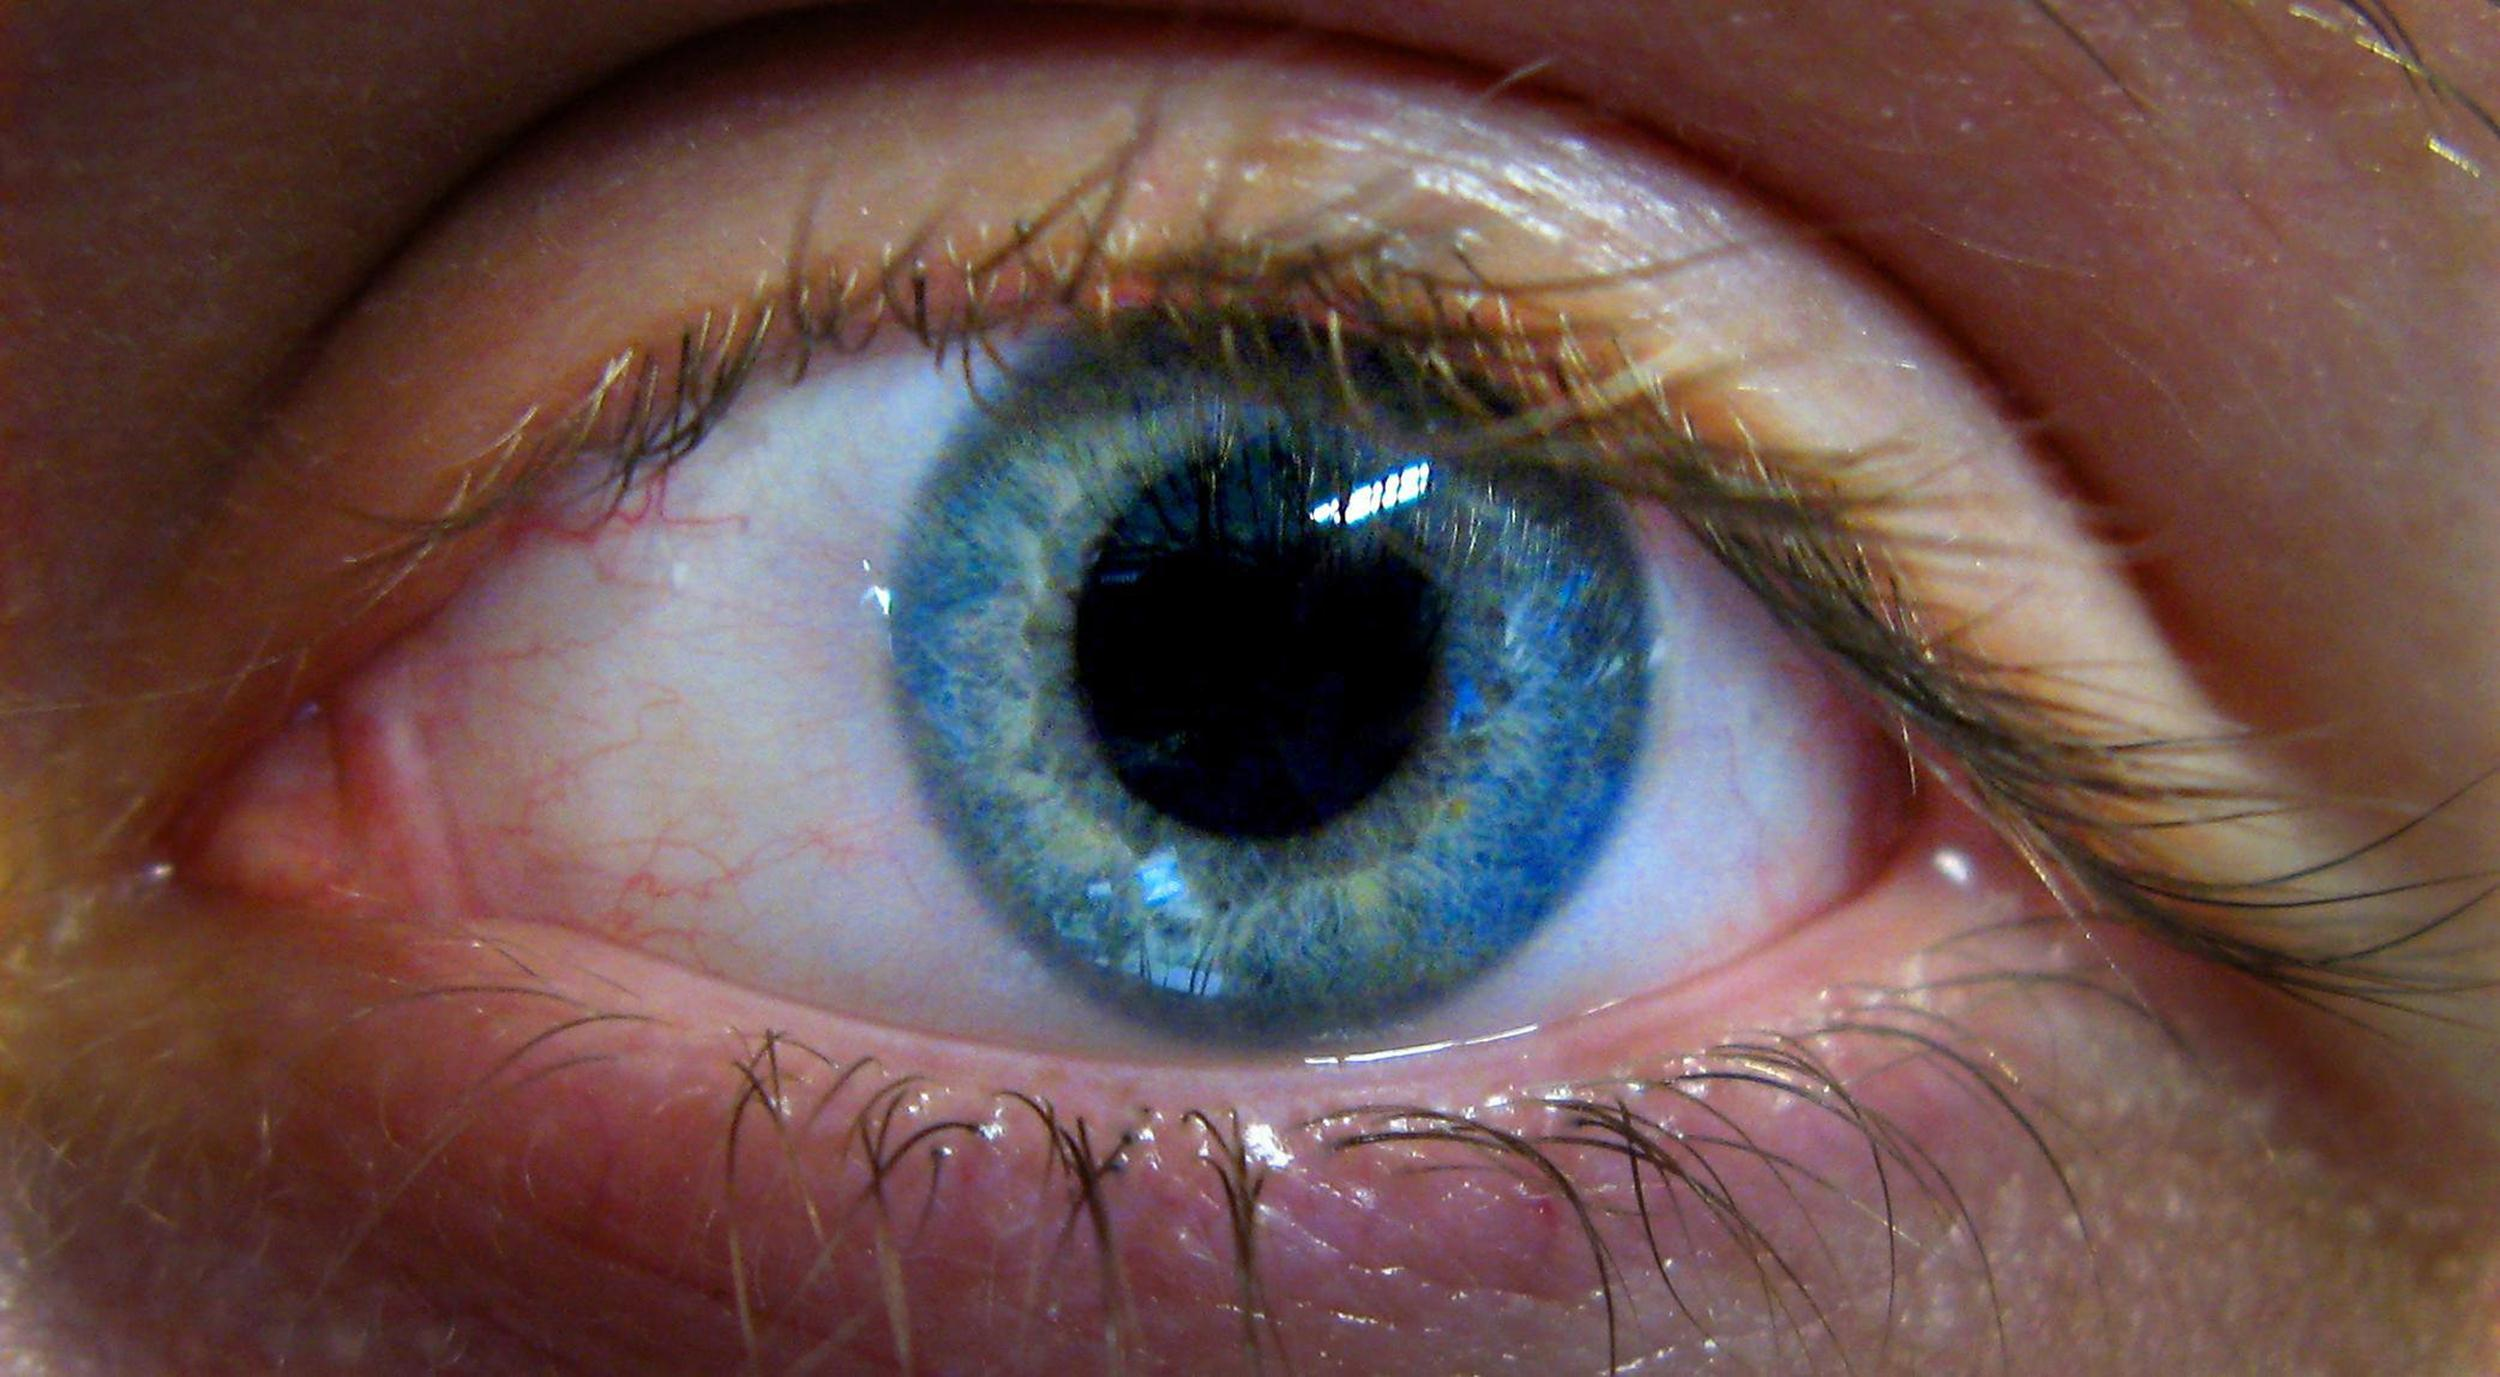 Image: A human eye on June 14, 2007